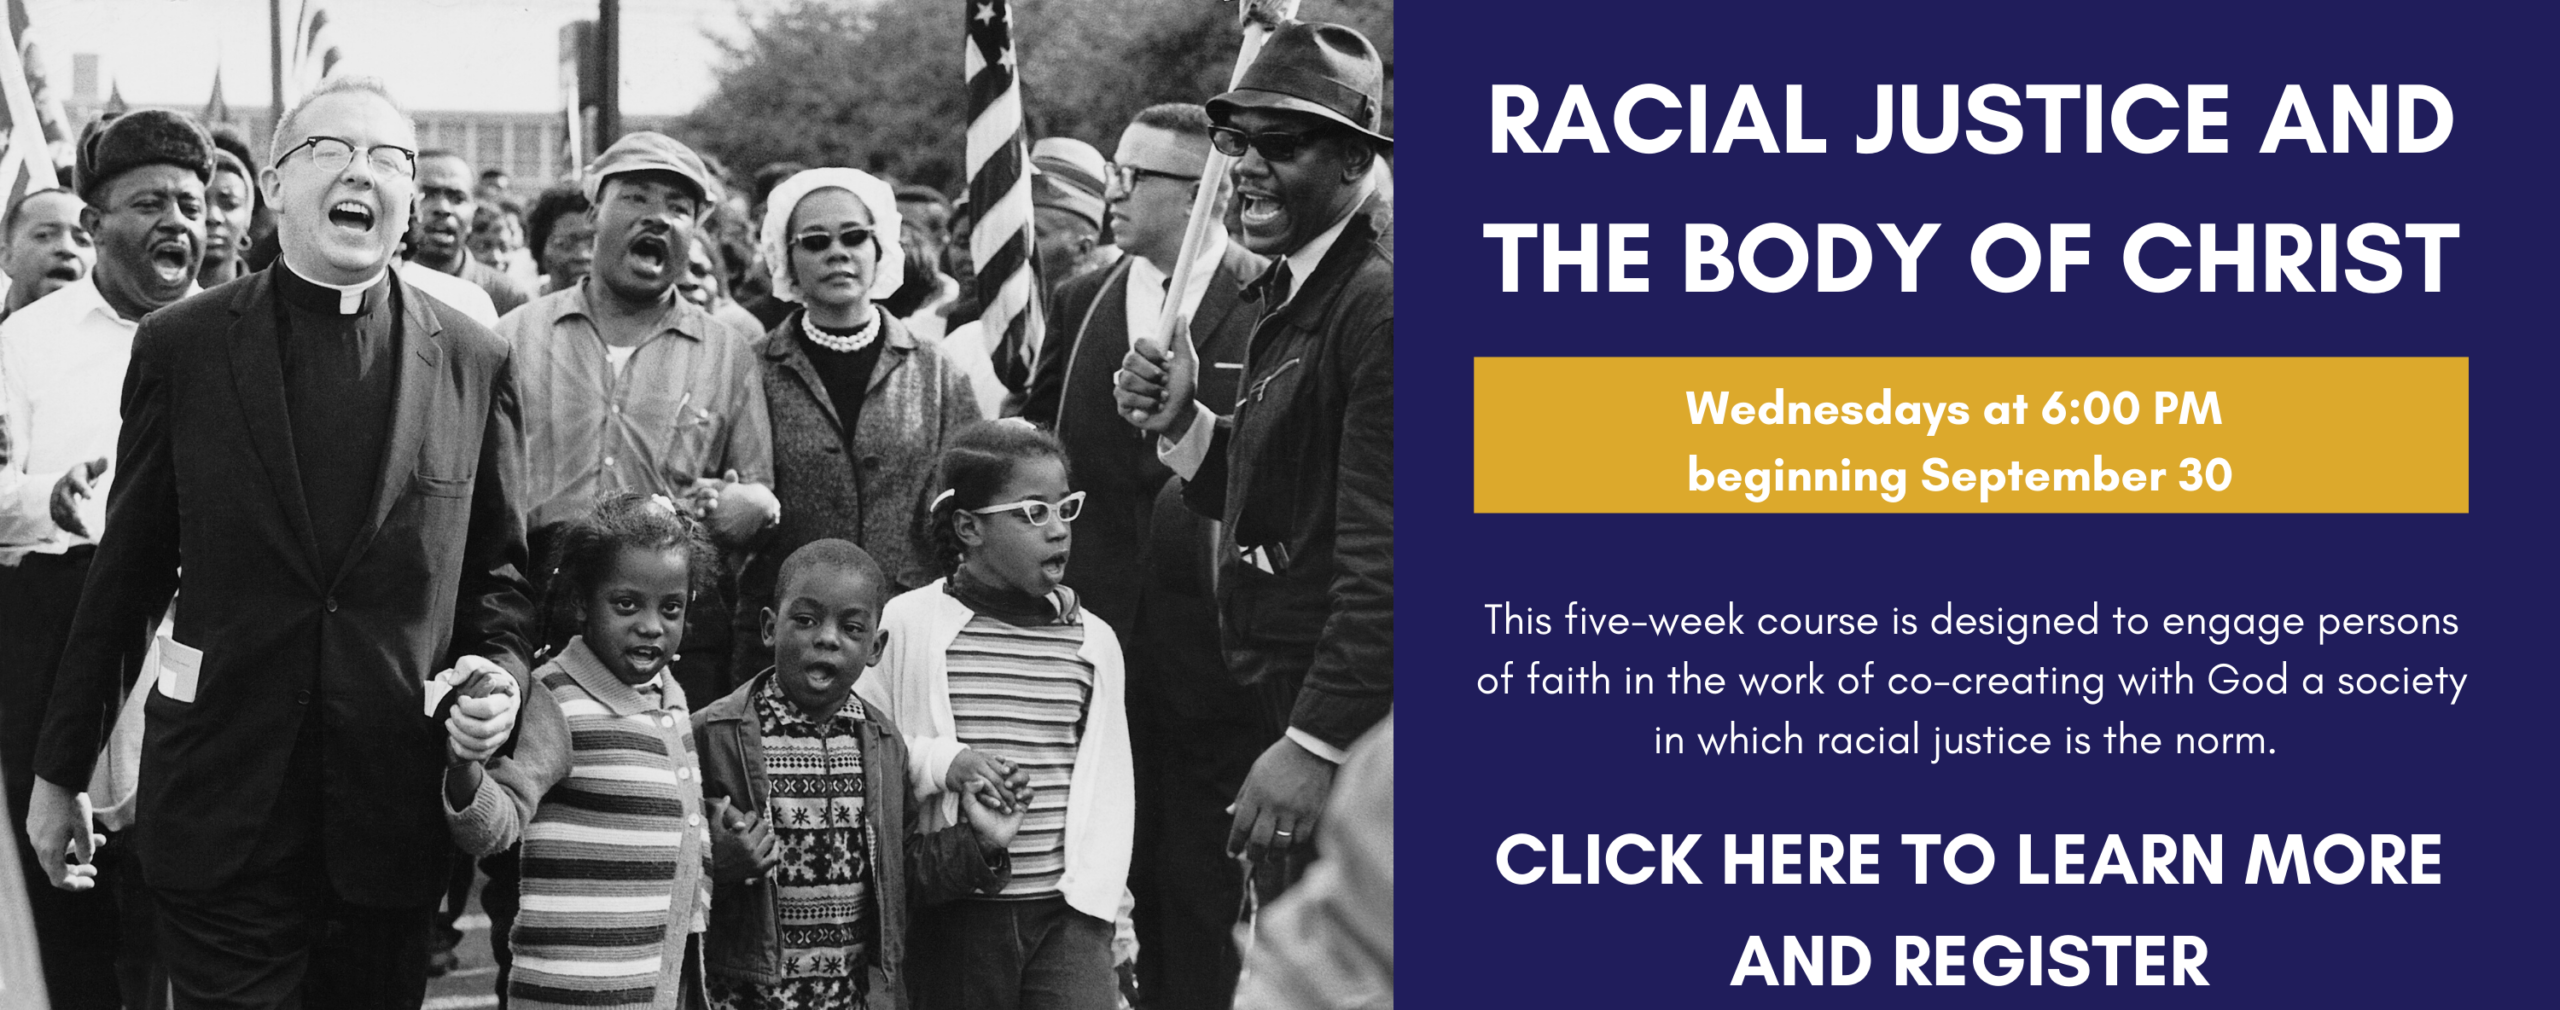 RACIAL JUSTICE AND THE BODY OF CHRIST (1)